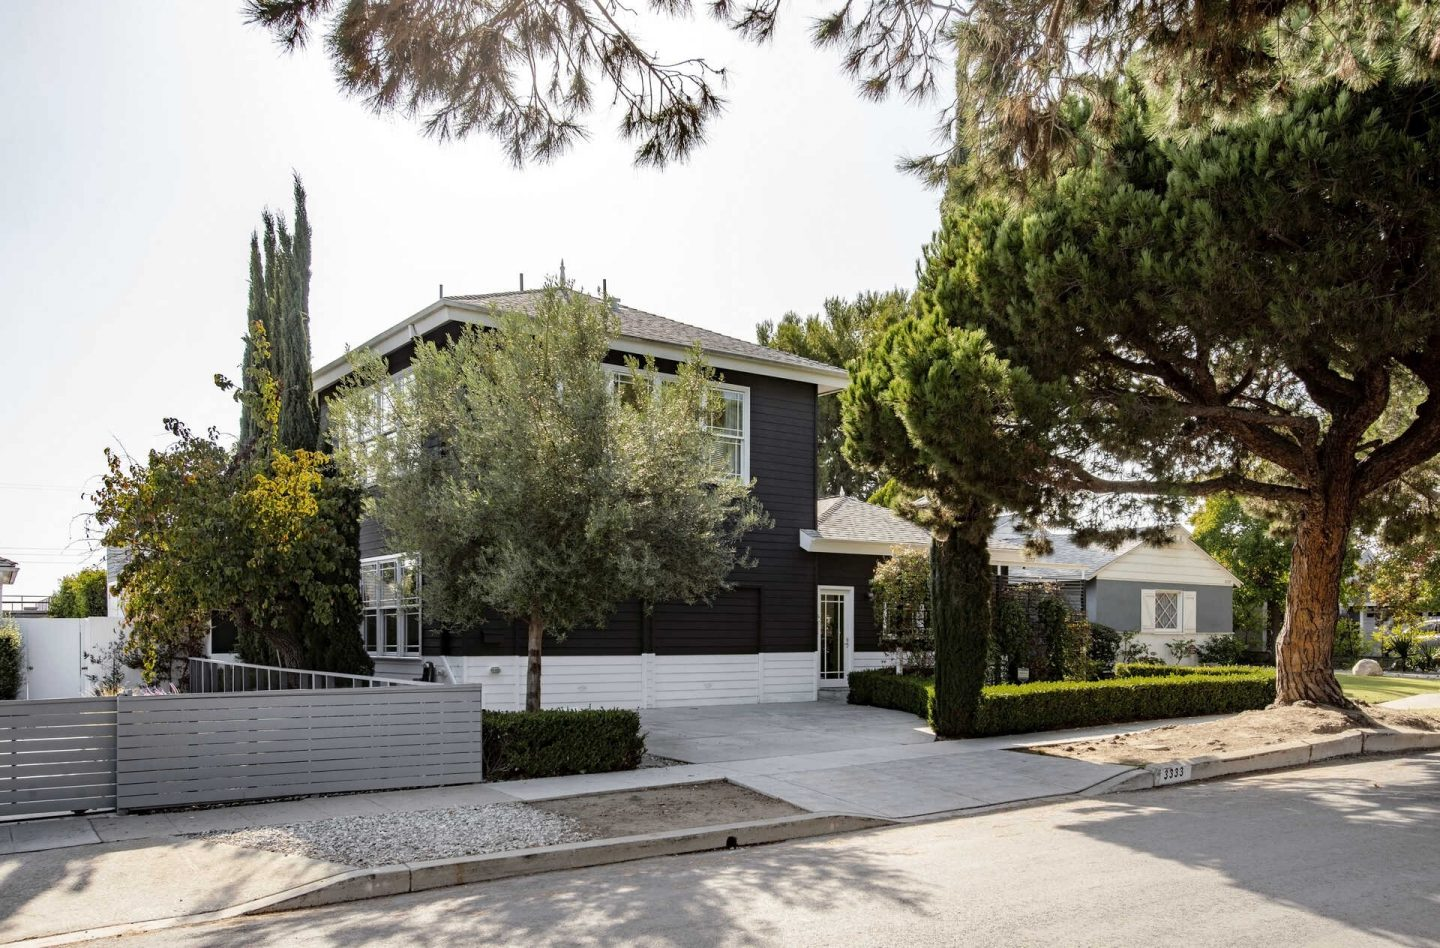 Designer Philippe Starck's First American Home!